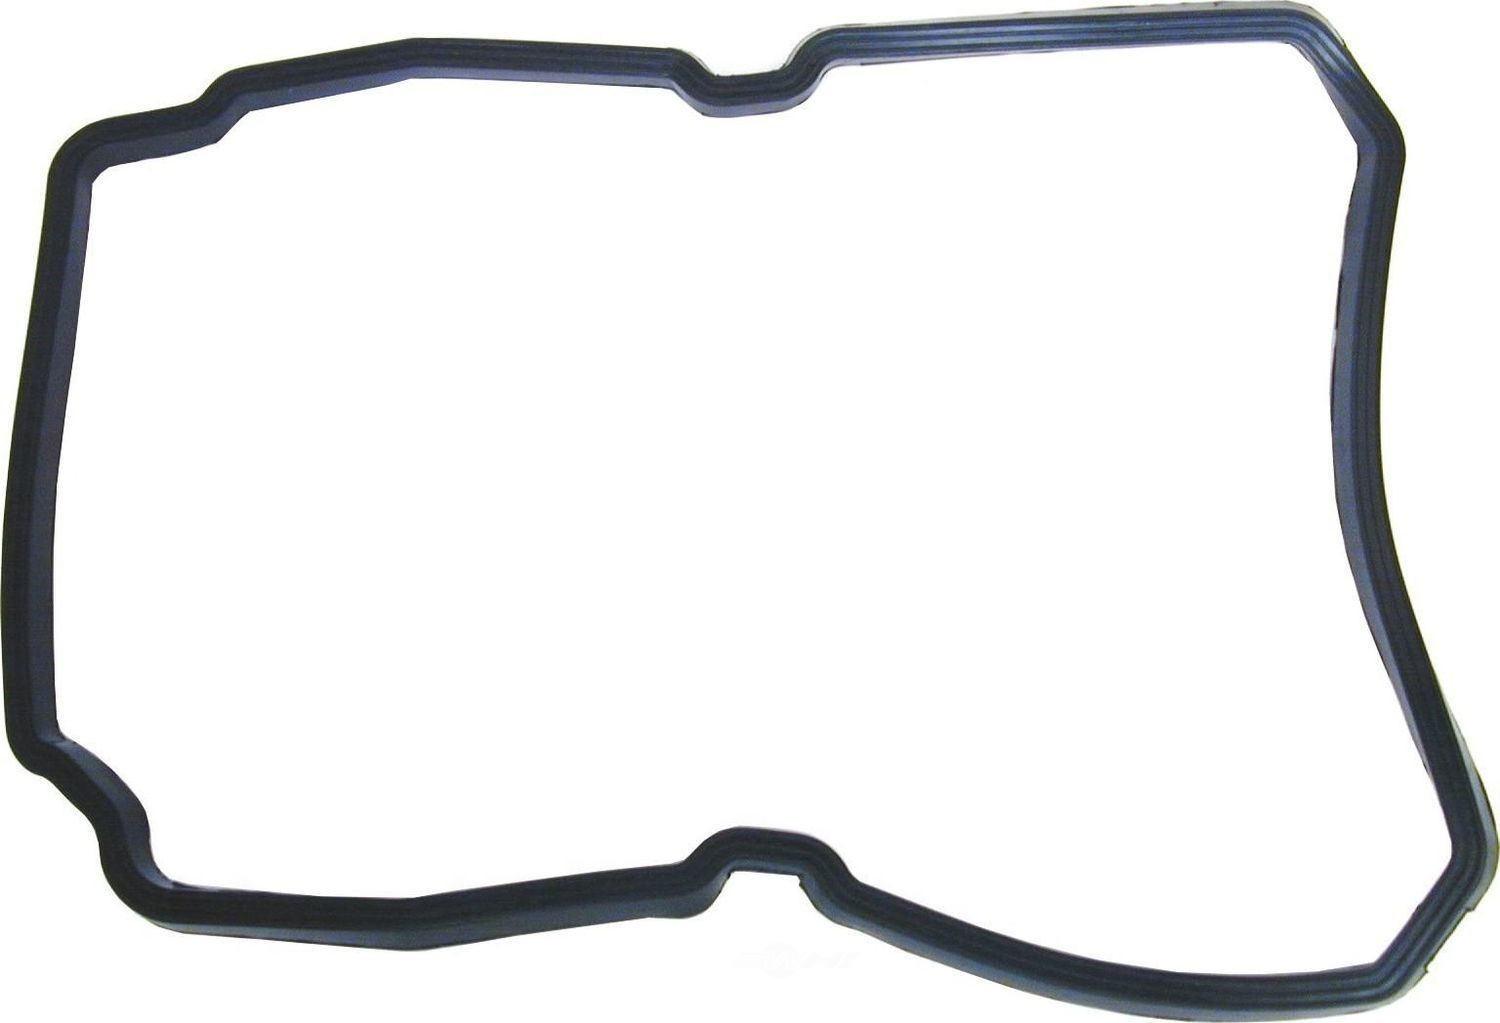 URO PARTS - Automatic Transmission Oil Pan Gasket - URO 1402710080